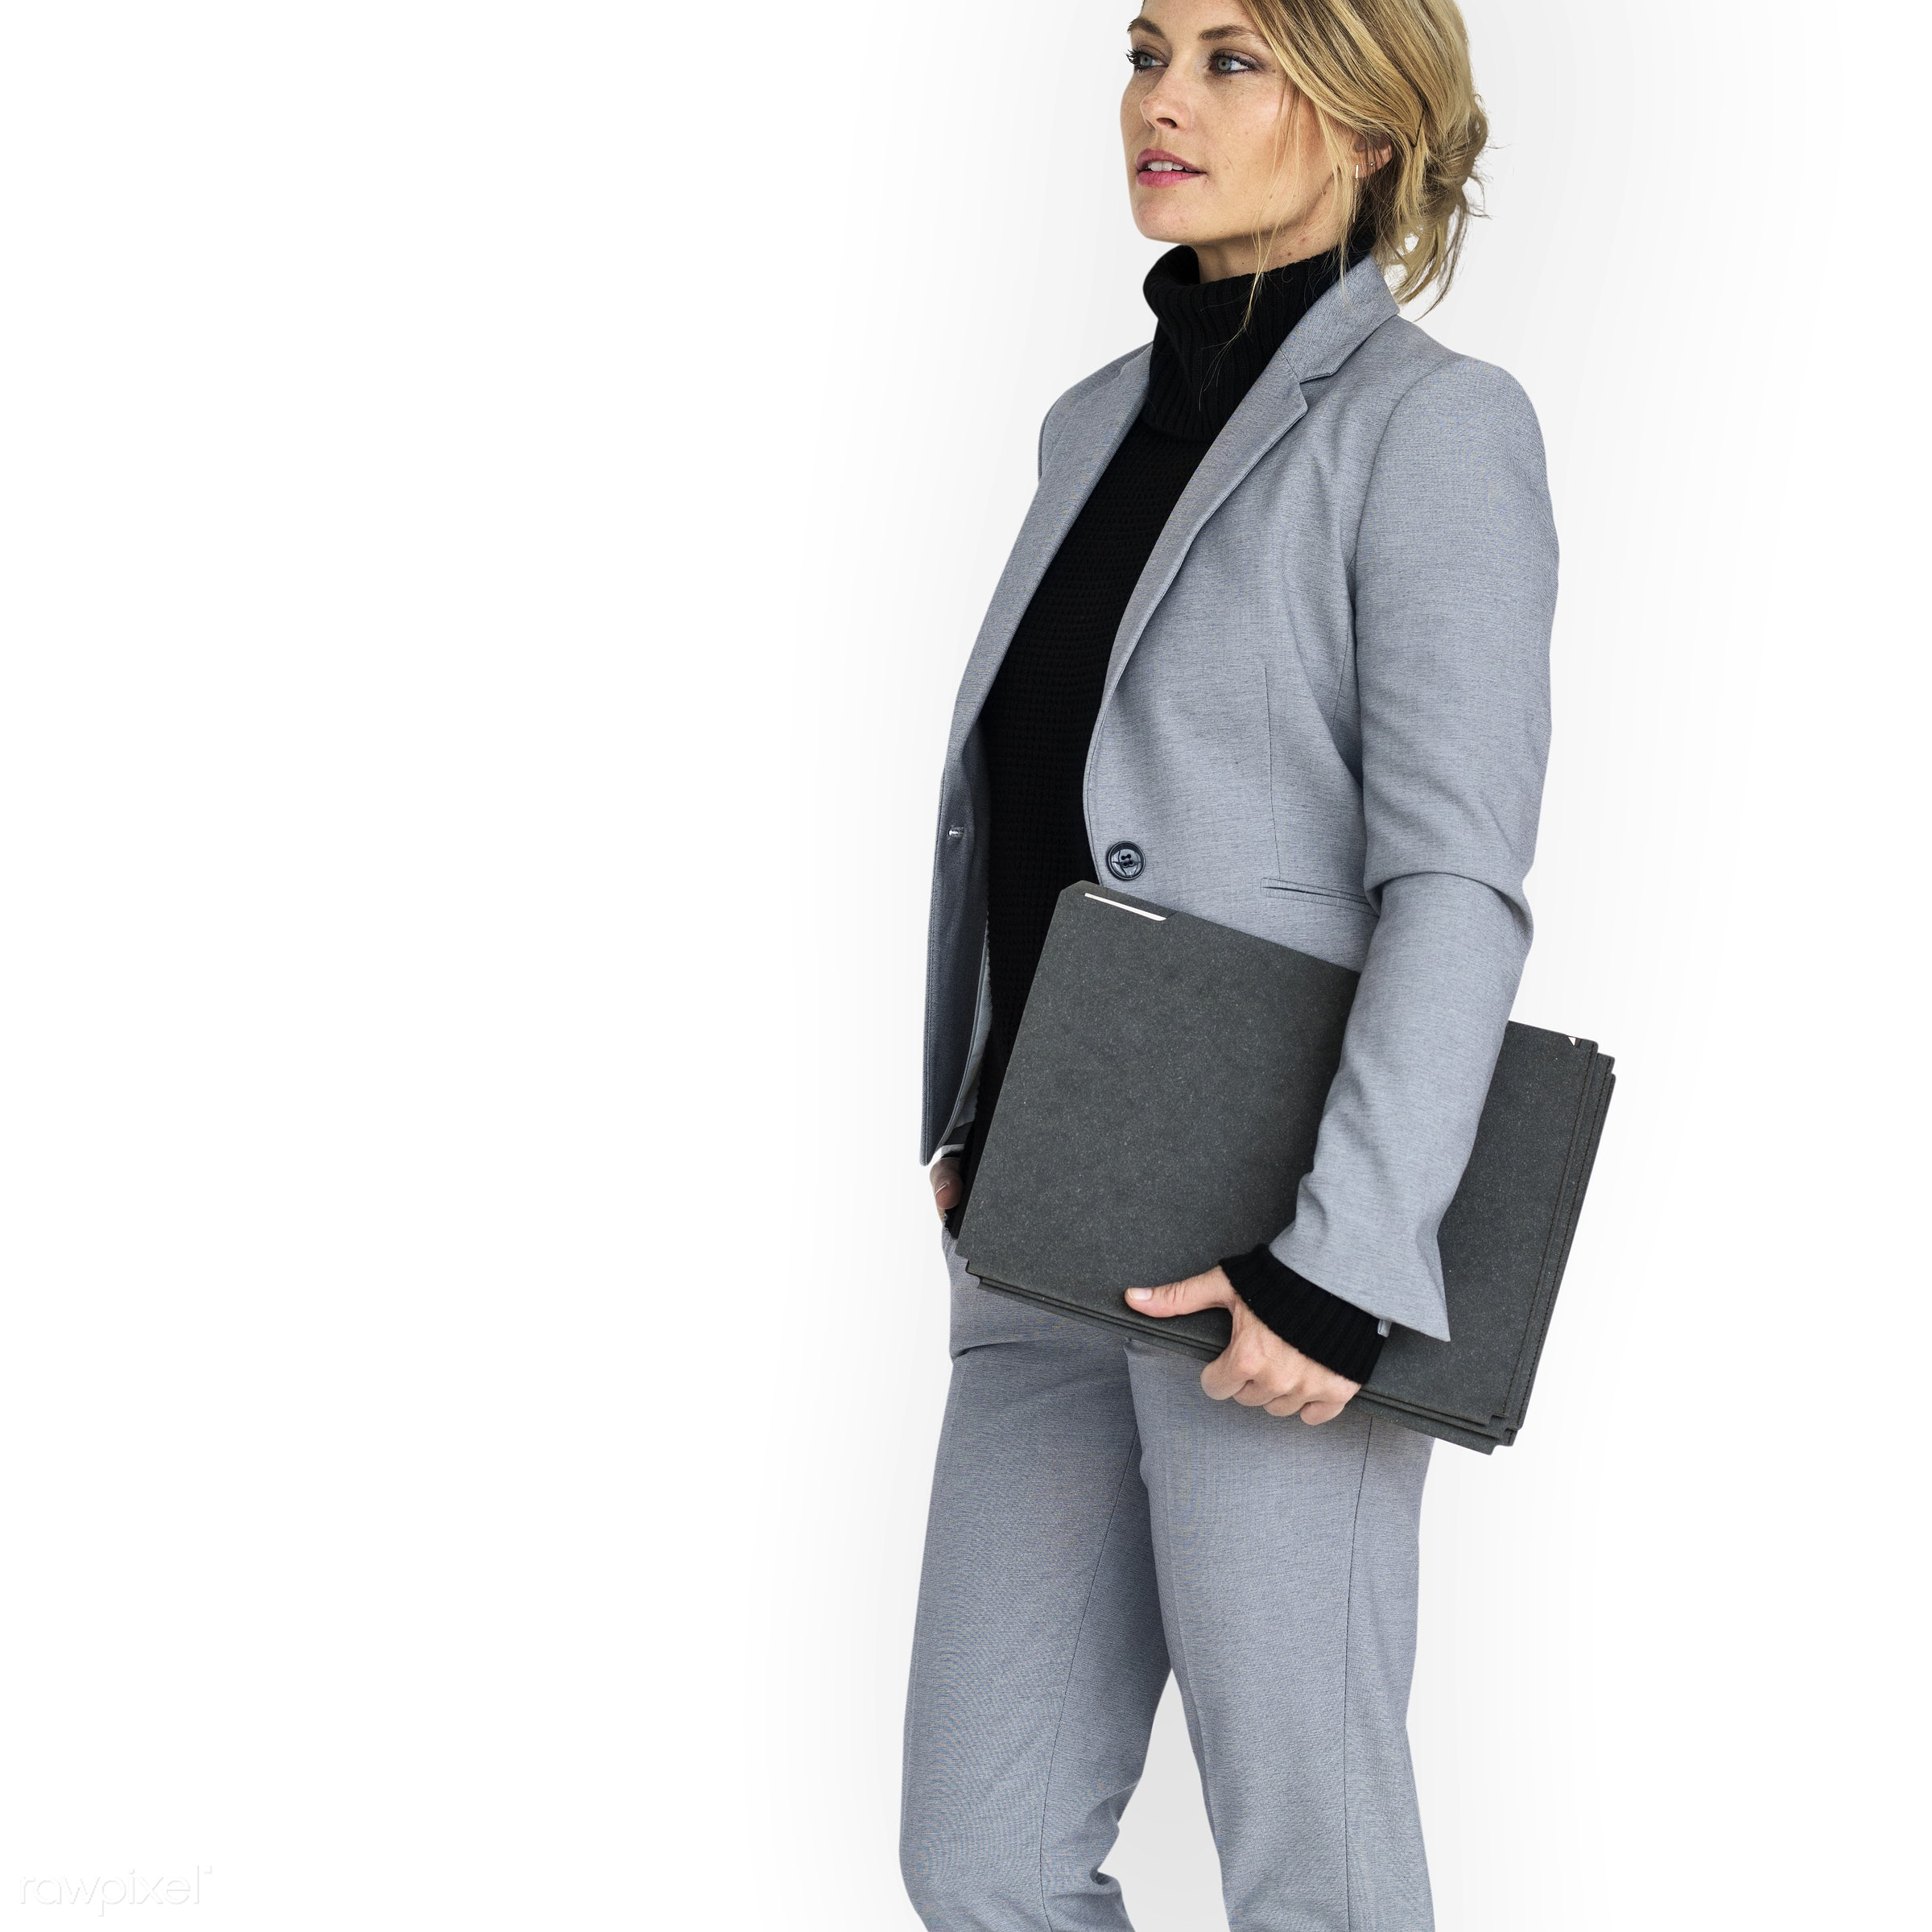 expression, studio, person, business wear, holding, isolated on white, people, caucasian, girl, woman, happy, smile,...